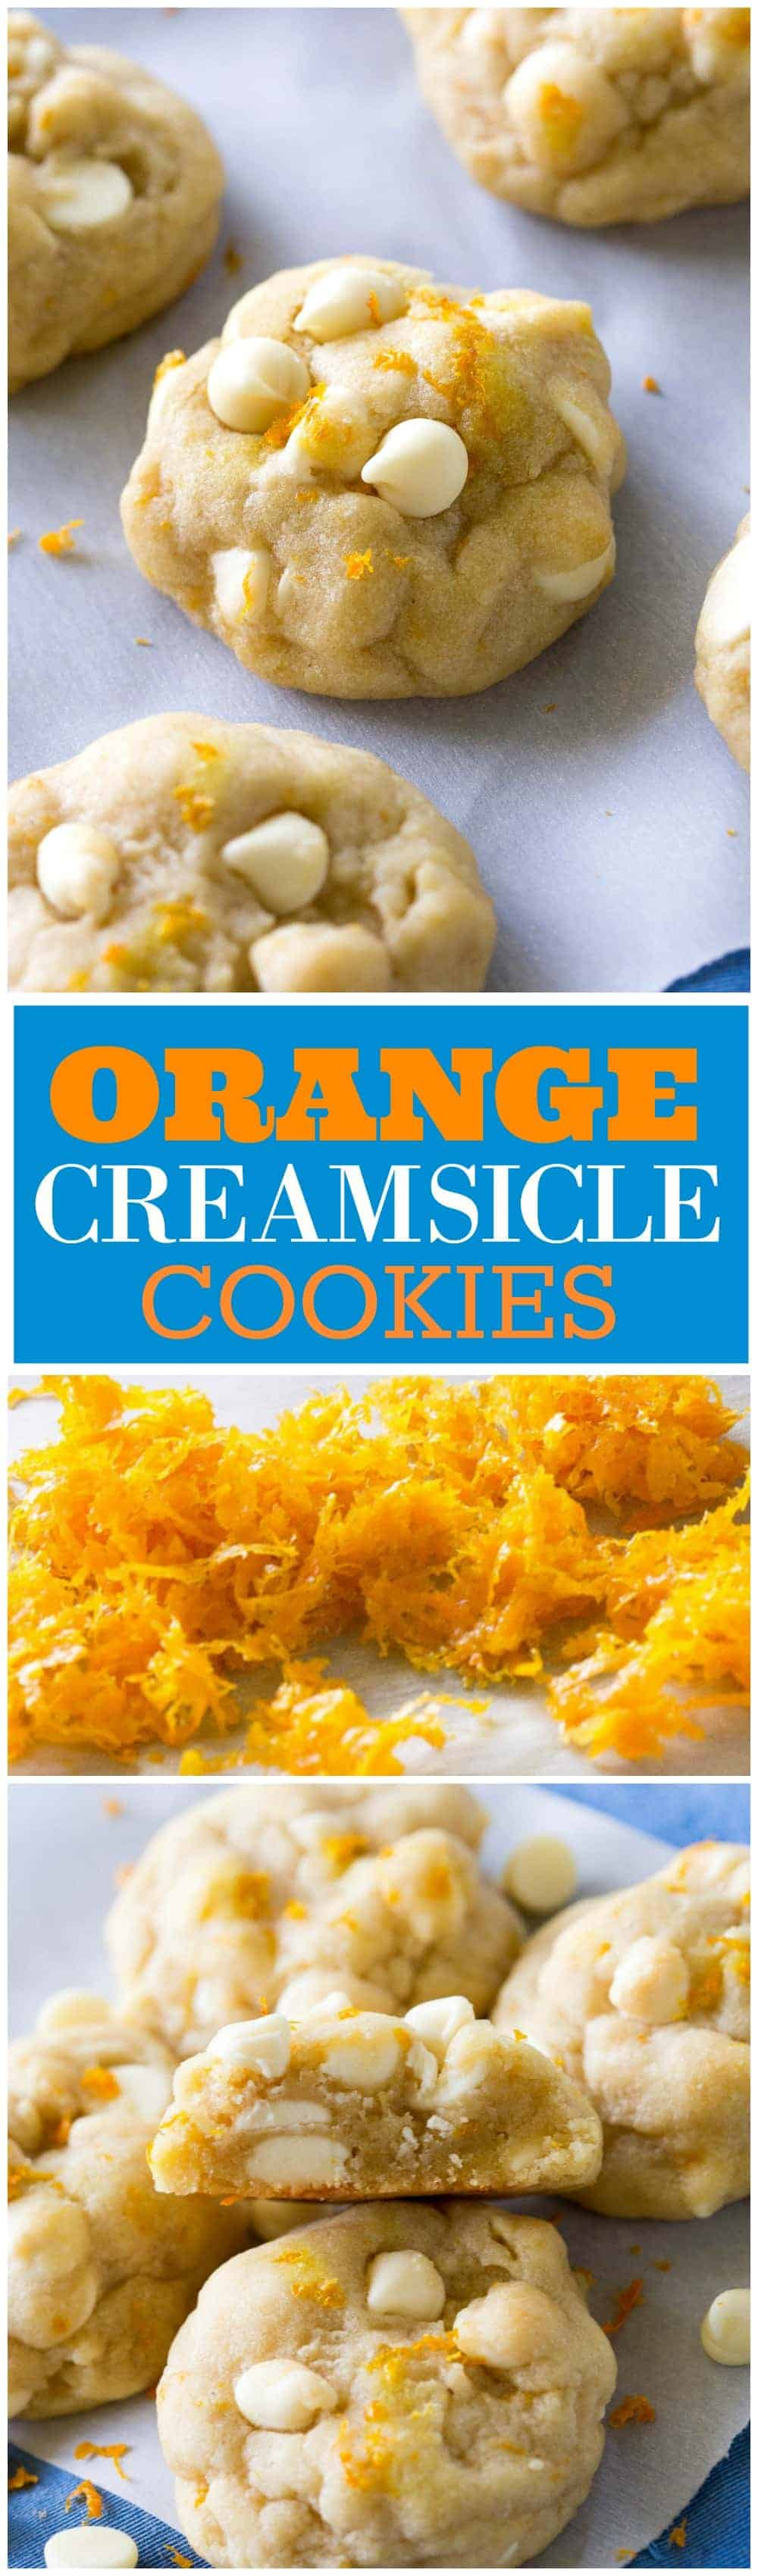 Orange Creamsicle Cookies - soft cookies with white chocolate chips and orange zest. Taste just like the popsicle. the-girl-who-ate-everything.com